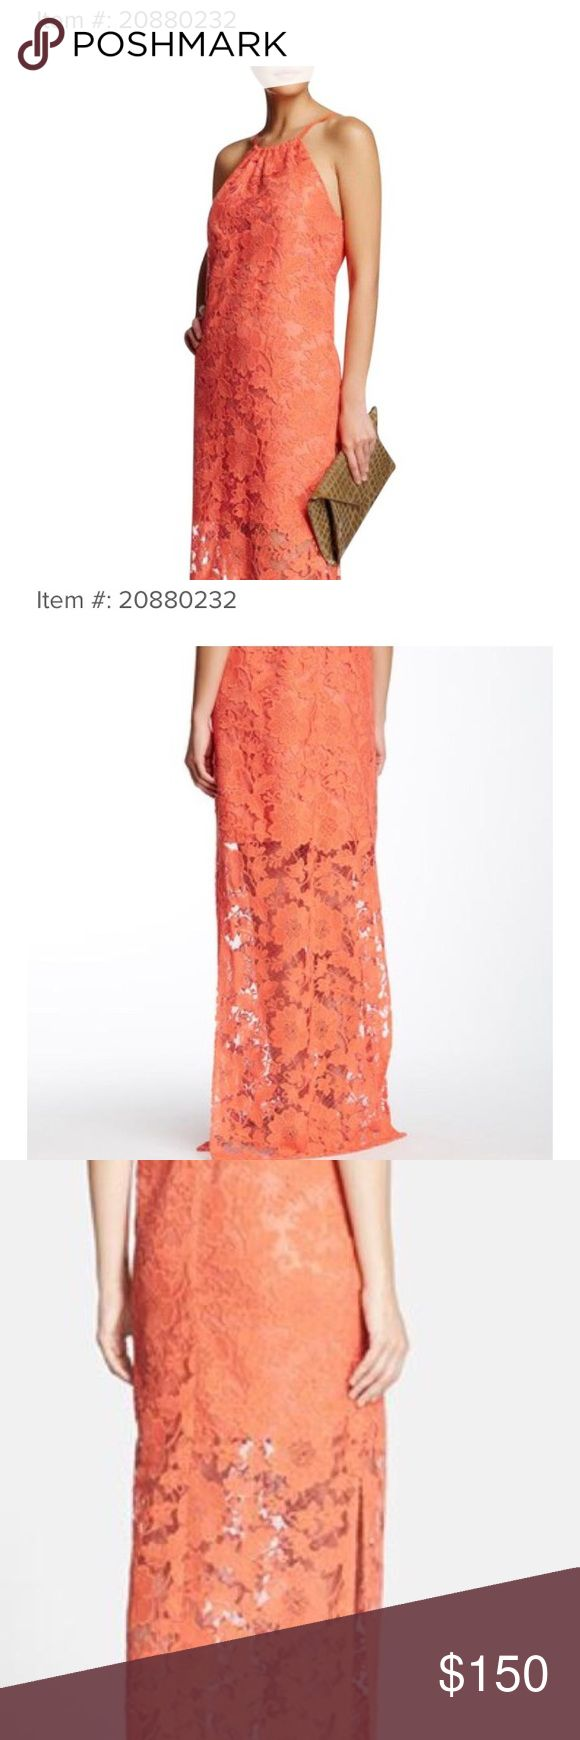 NWT - Trina Turk Coral Pennie lace maxi dress Brand new Trina Turk halter lace maxi dress with side slits. Gorgeous coral color like pics 1-3! Taking offers - absolutely stunning Trina Turk Dresses Maxi